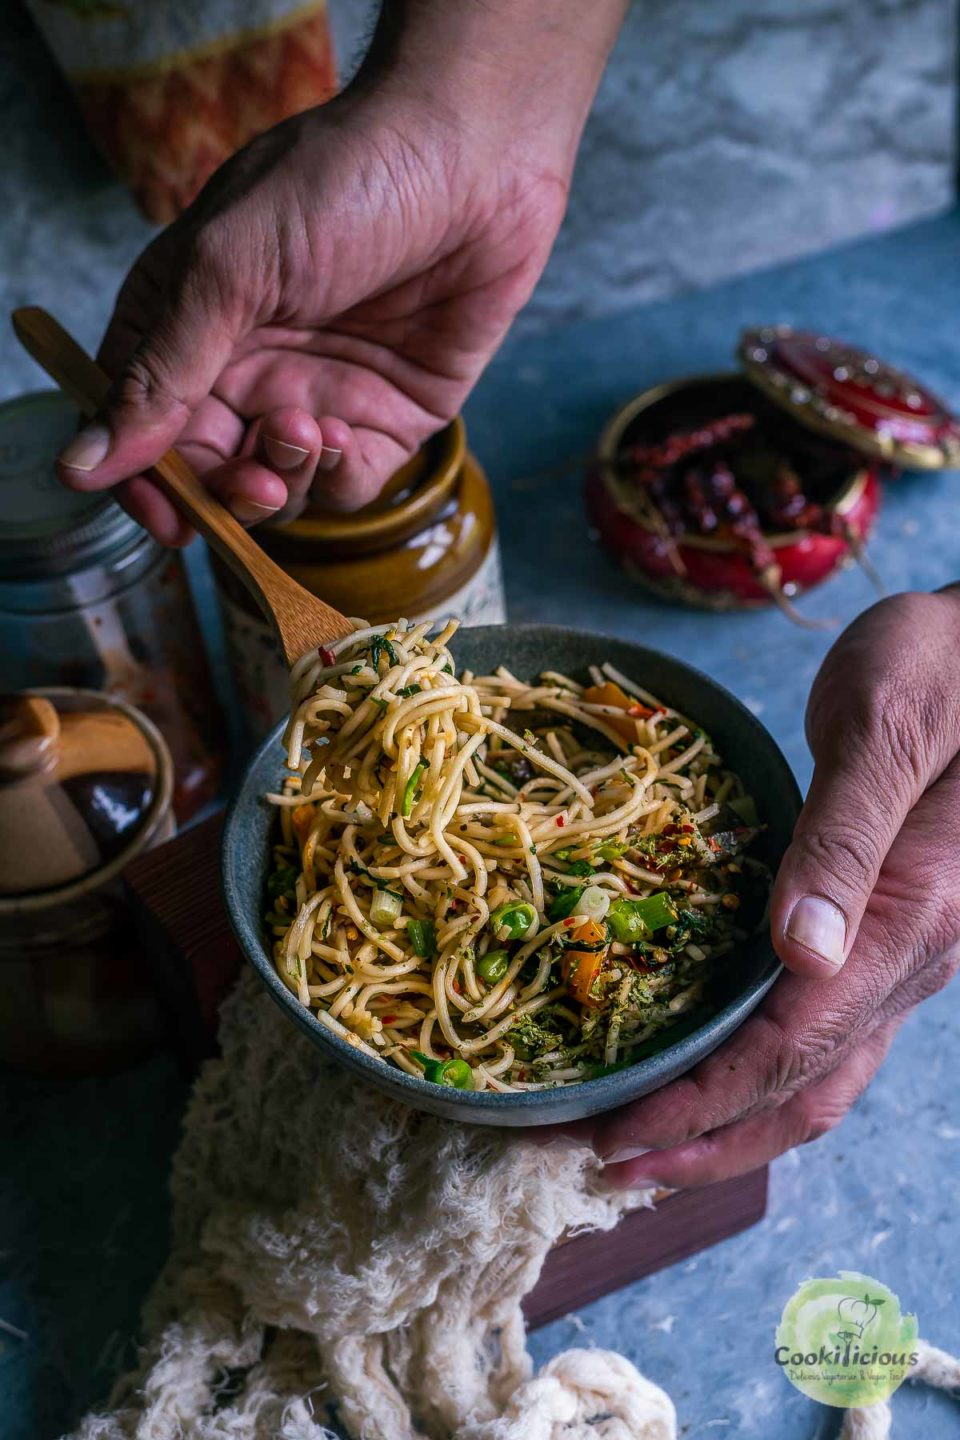 a hand digging taking a forkful of Hot and Spicy Noodles/ Cilantro Pot Noodles from a bowl